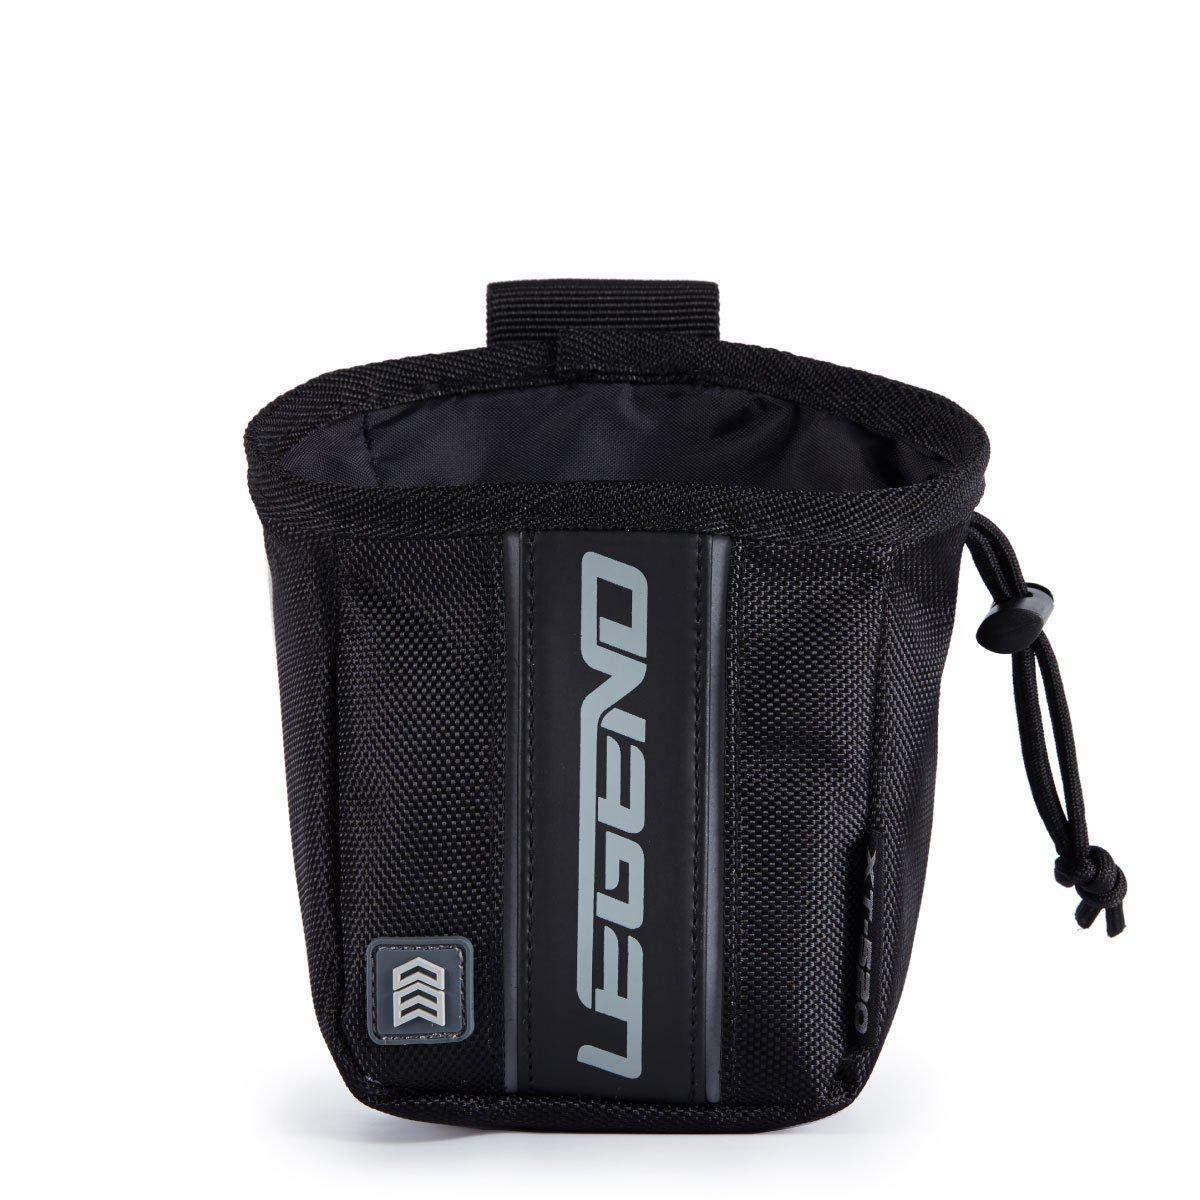 Legend Archery Release Aids Pouch Bag with Belt Loop Draw String and Zipped Pocket XT520 (Black) by Legend